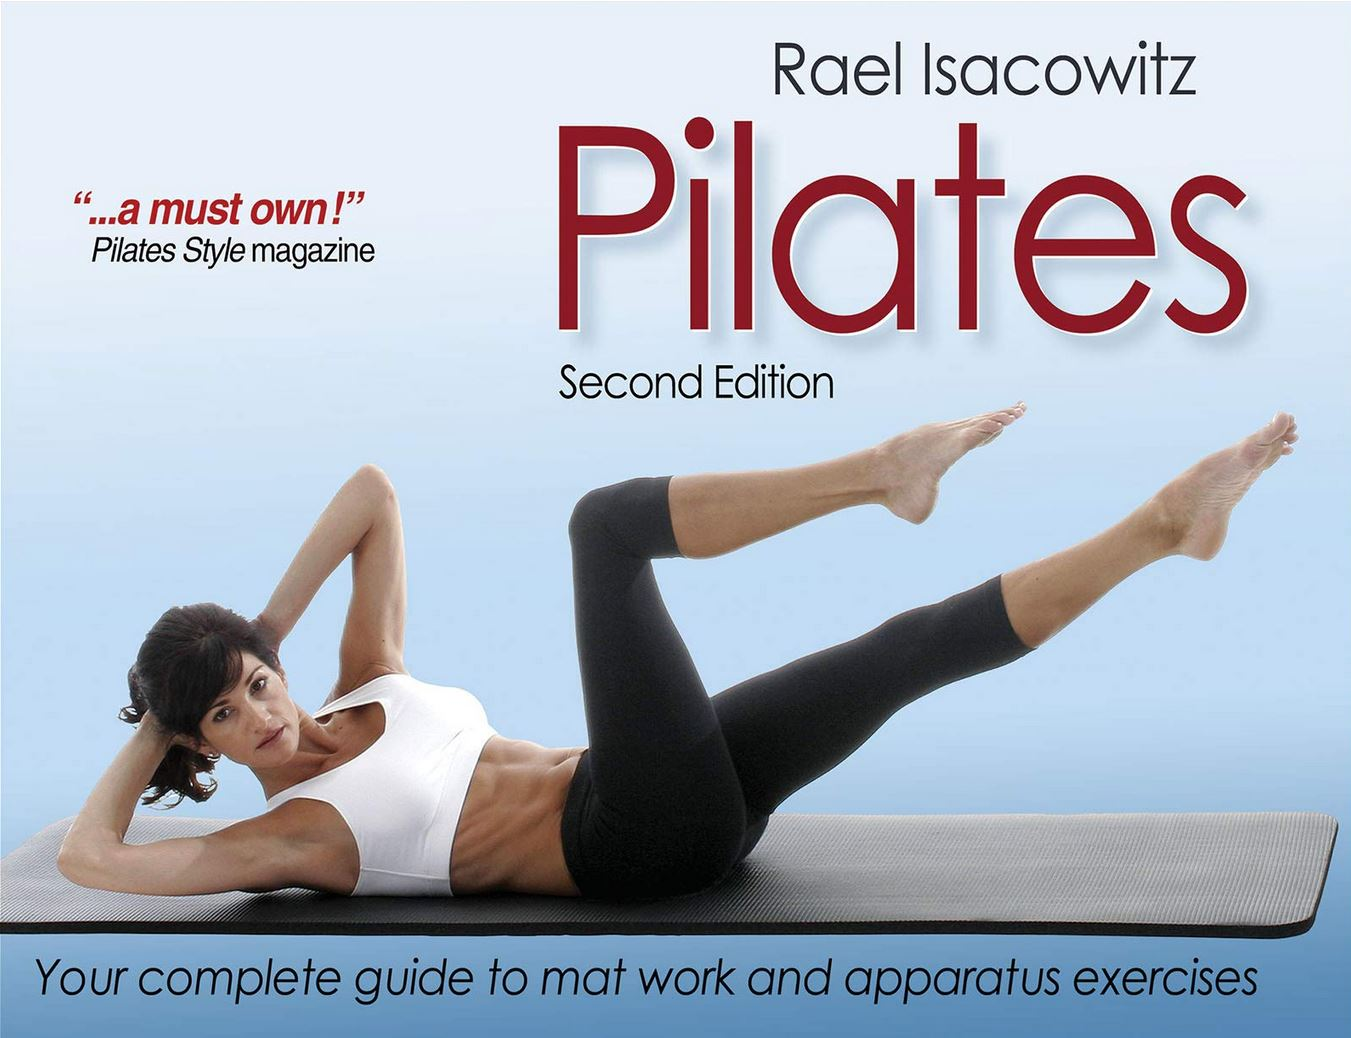 Pilates by Rael Isacowitz Book Review